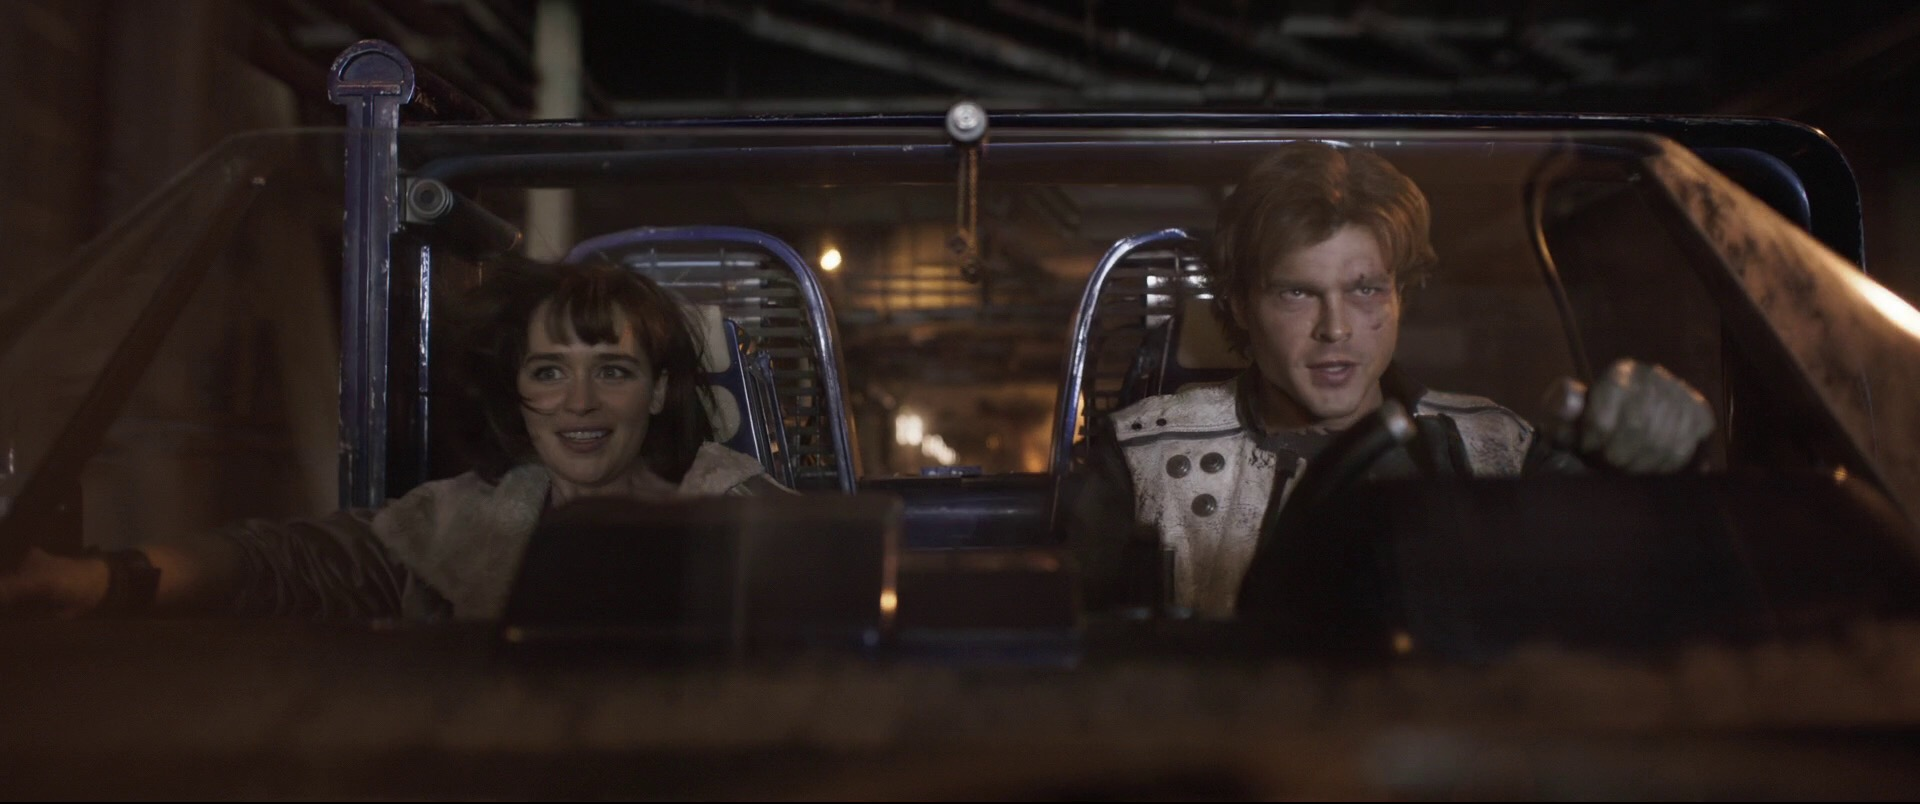 Solo-A-Star-Wars-Story-Trailer-Analysis-Solo-And-Qira-Speeder-Future-of-the-Force